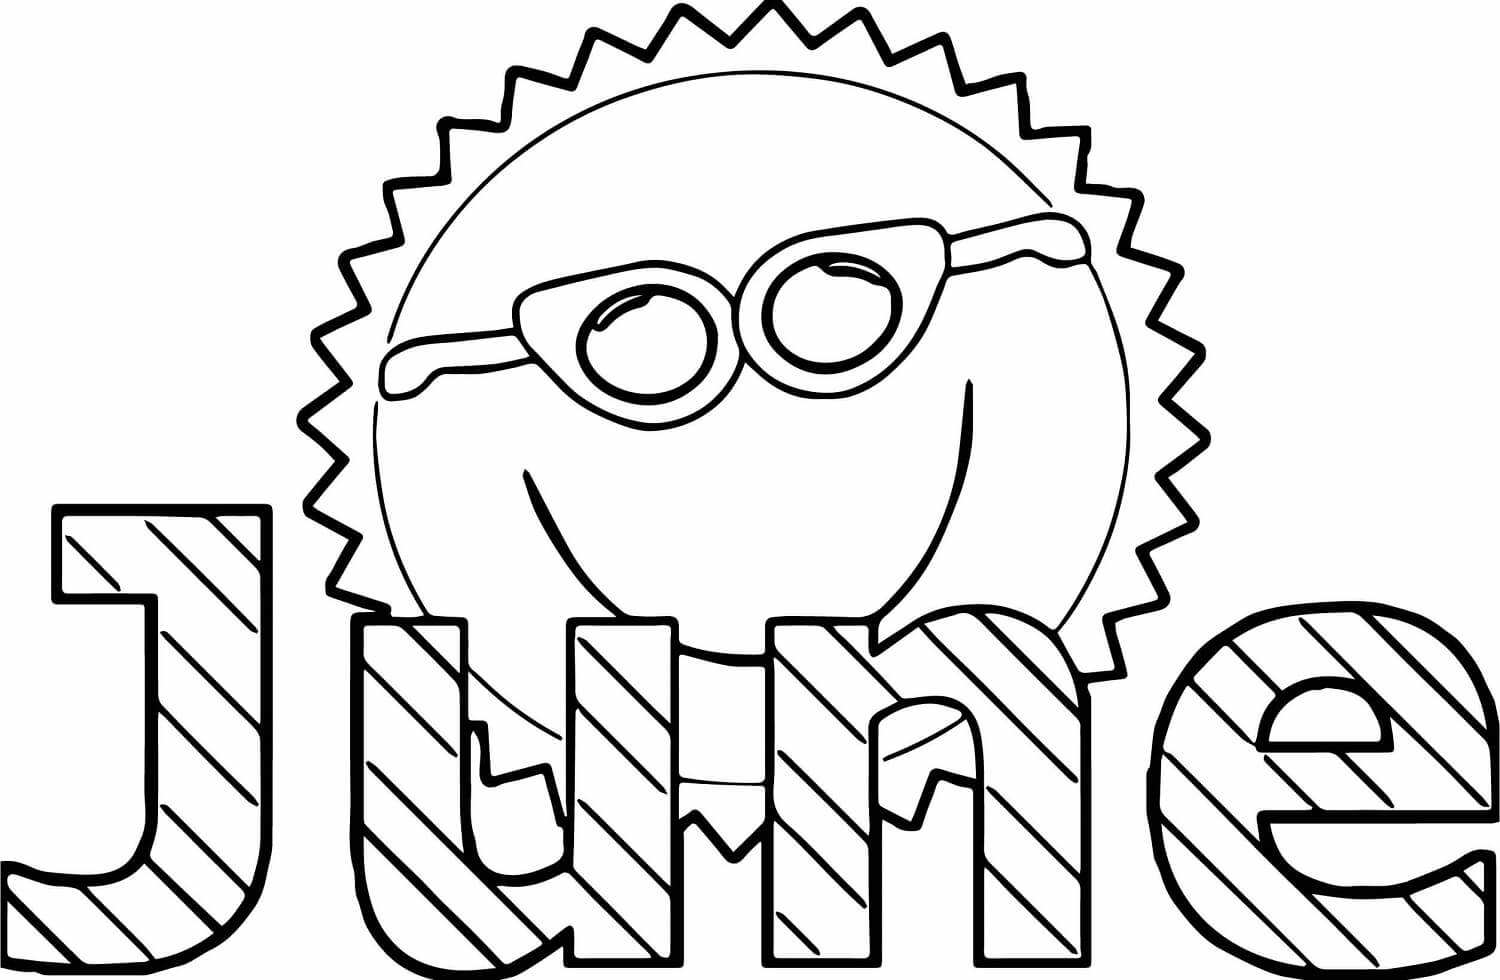 15 Free June Coloring Pages To Print Scribblefun